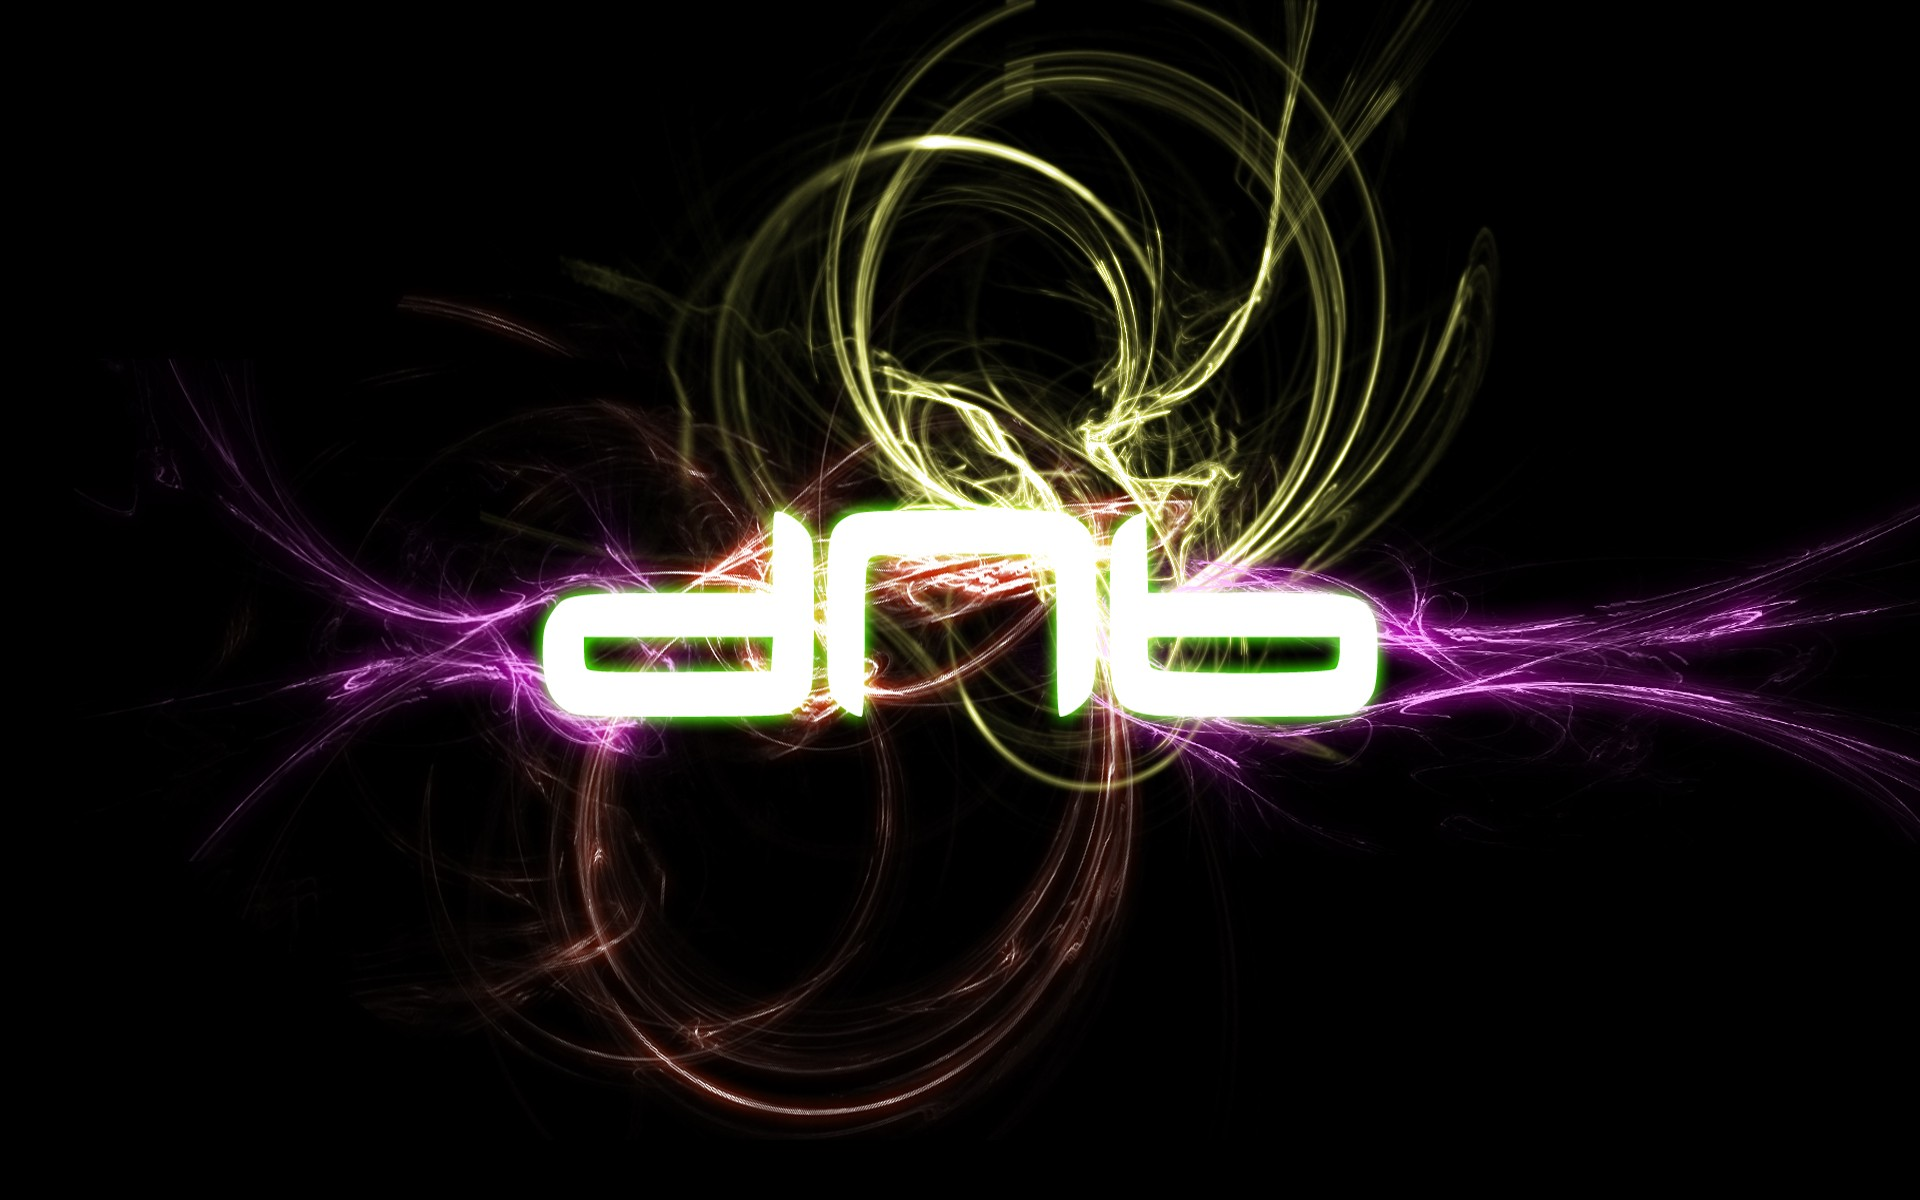 abstract music lights dnb drum and bass